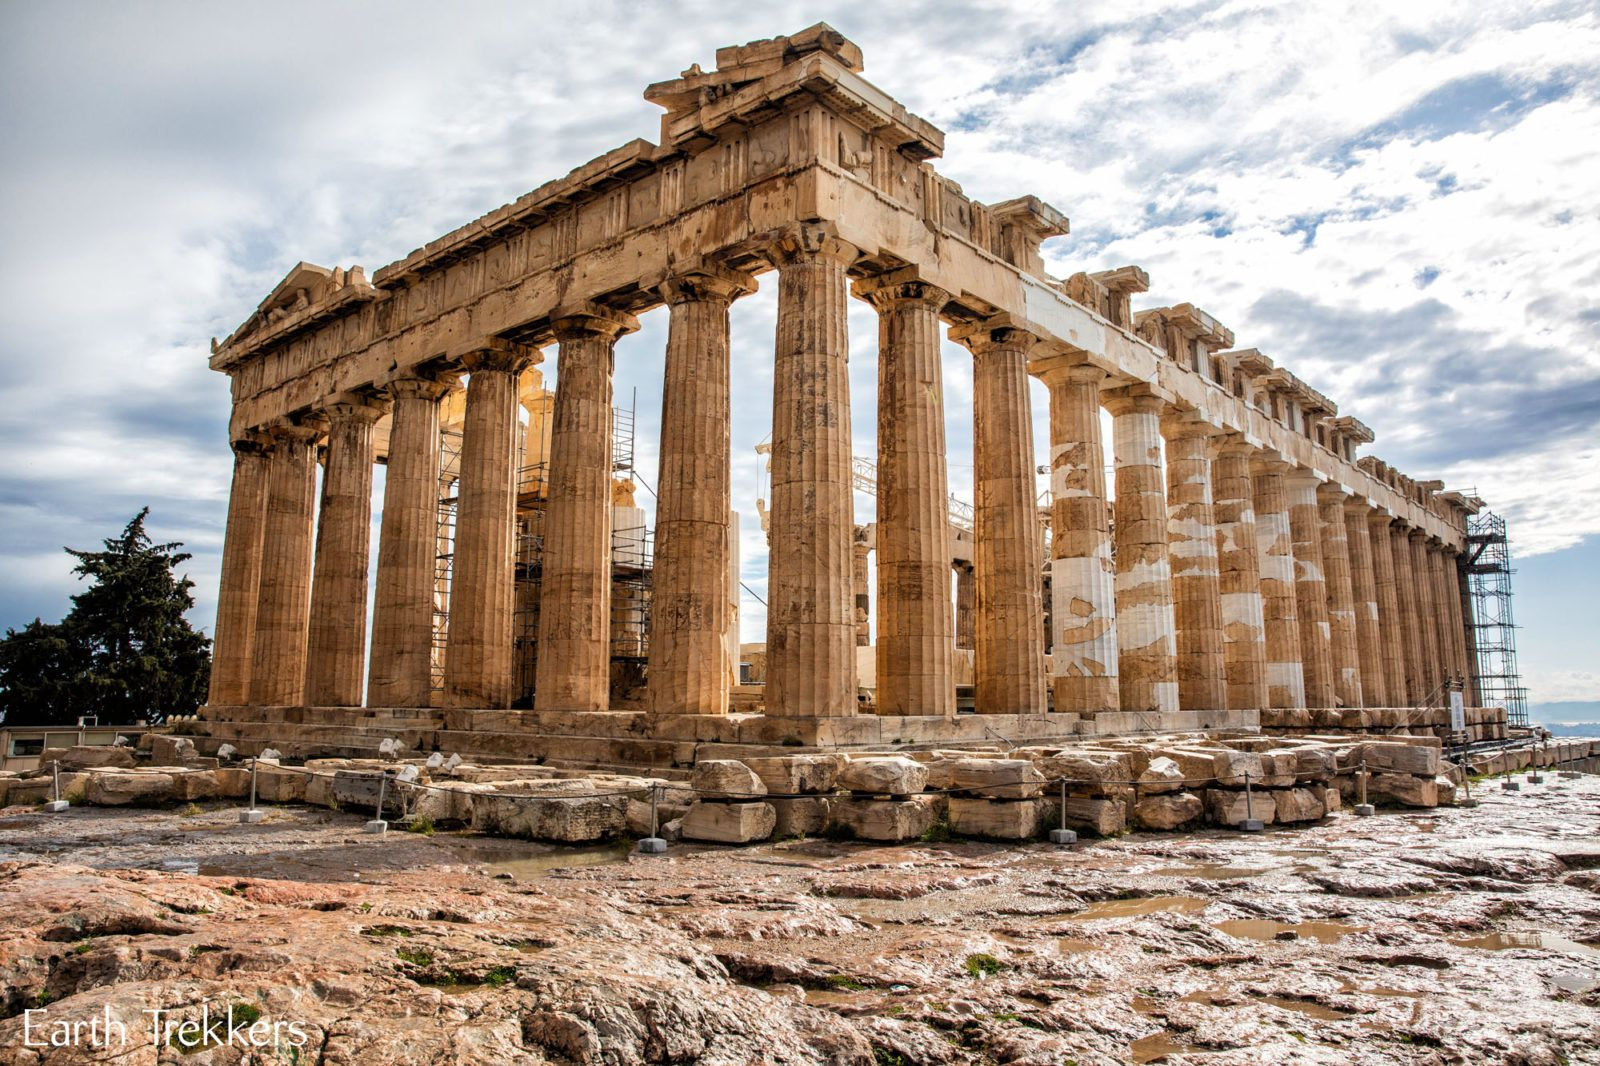 How to Visit the Parthenon